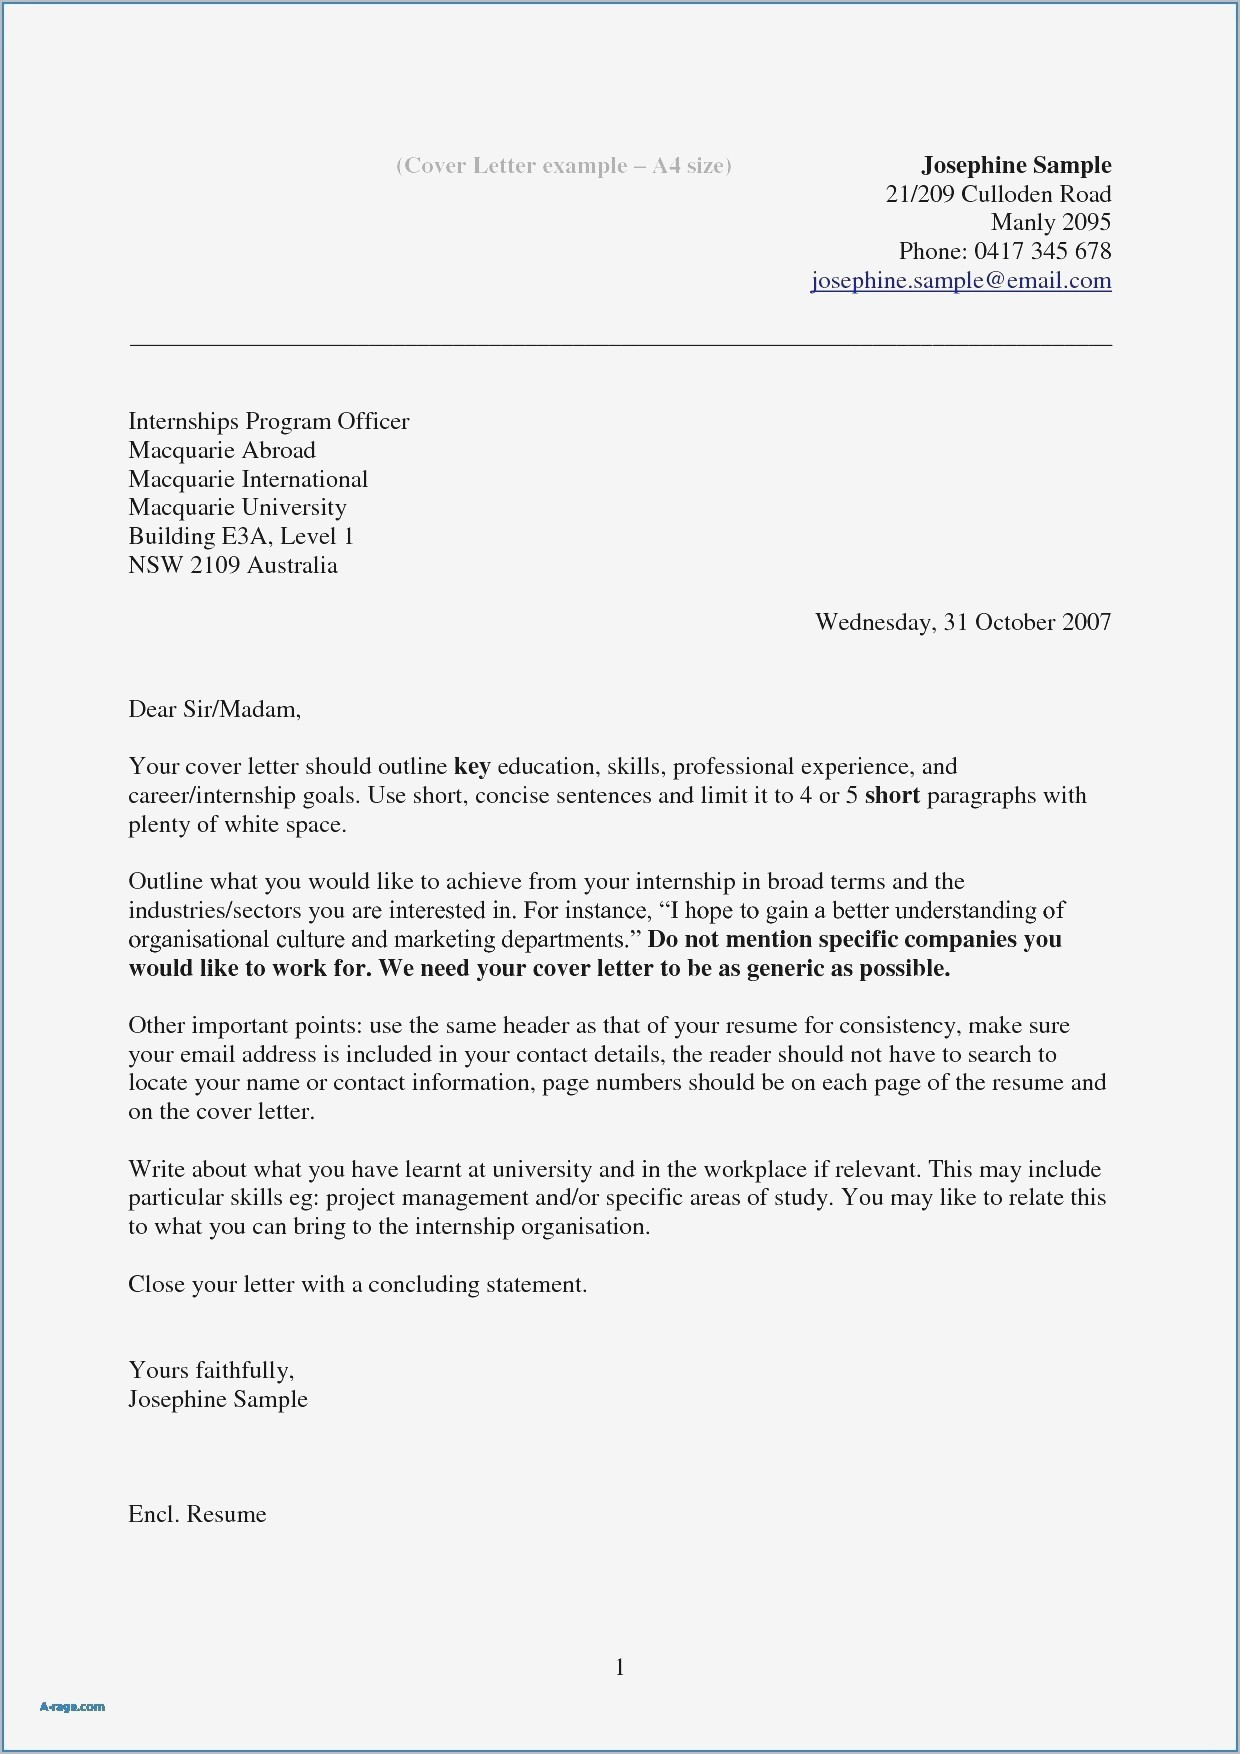 Email Covering Letter Template - Cover Letter for Pany Not Hiring